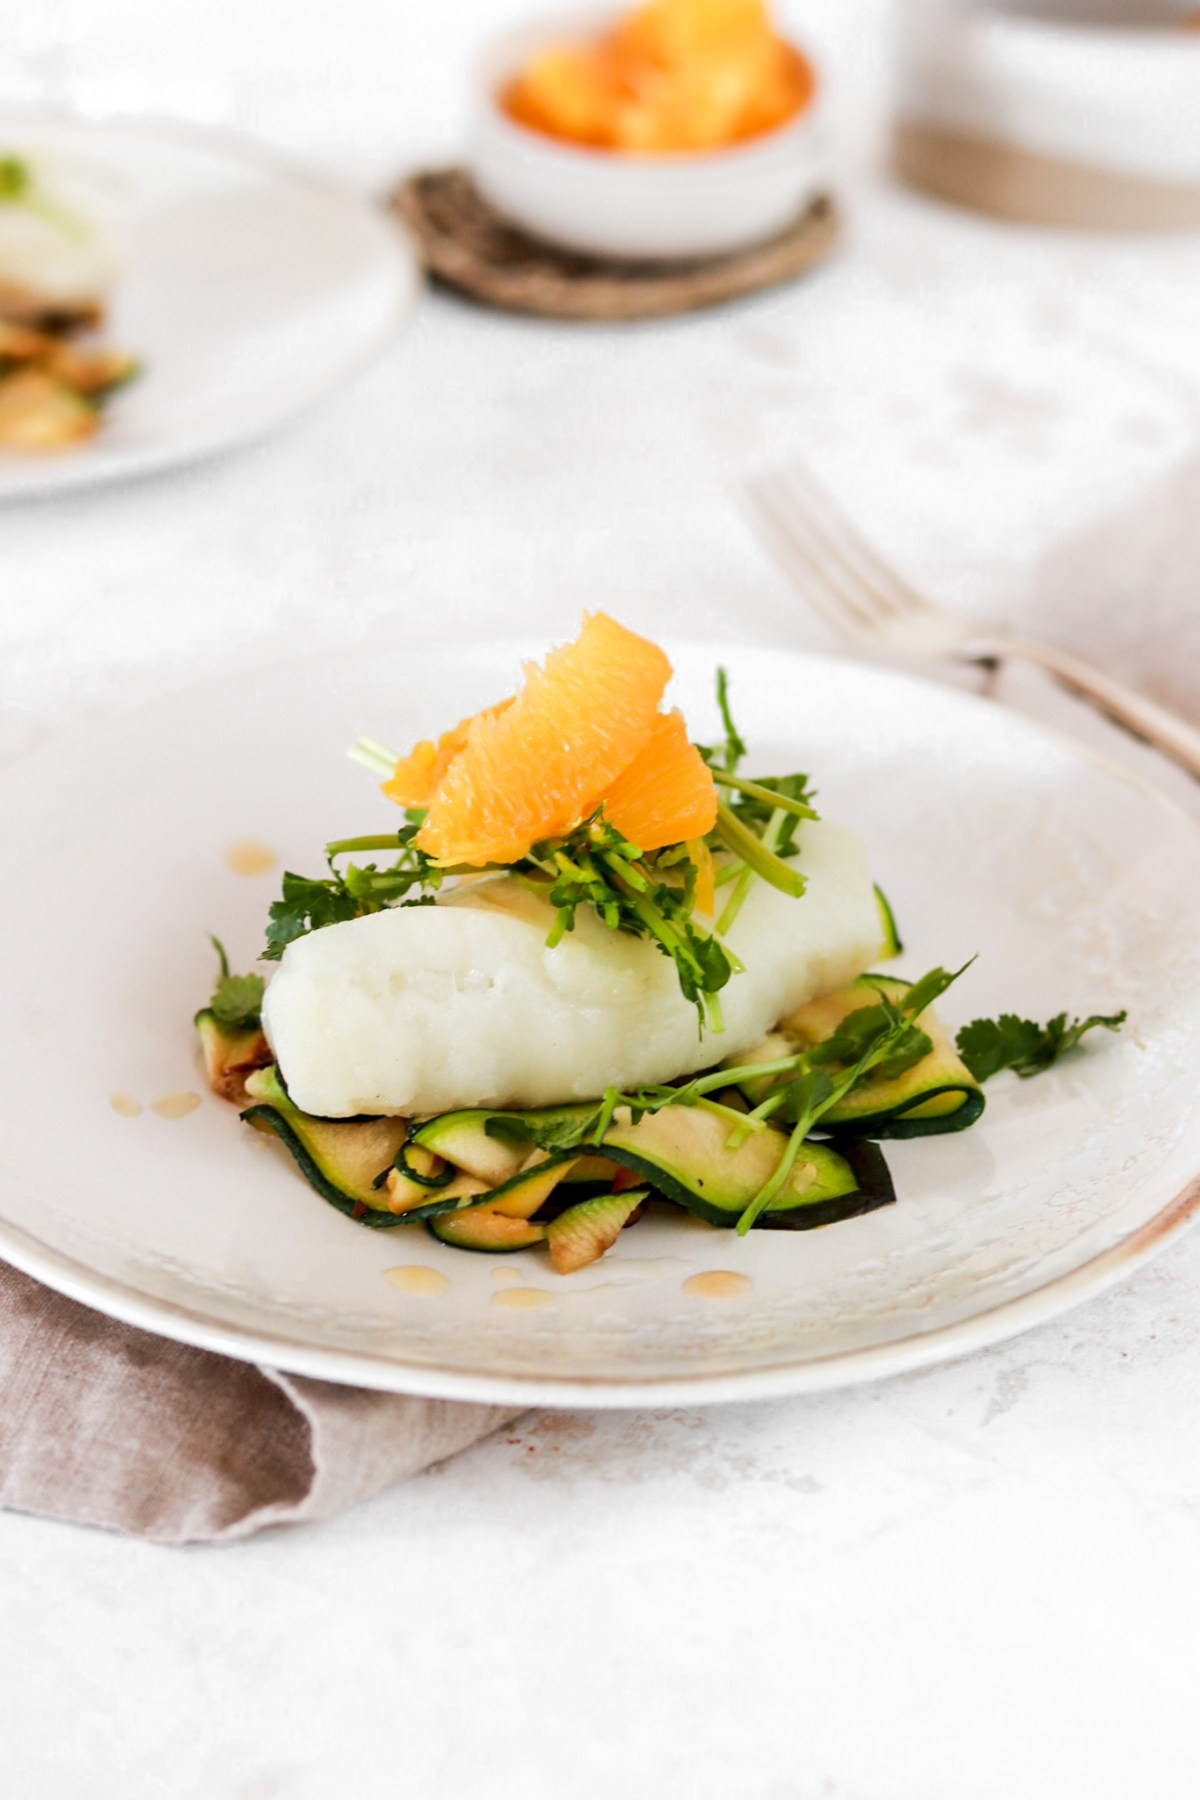 Low Carb Cod with Orange Dressing (Gluten, Grain, Dairy Free & Low Carb) From Close Up